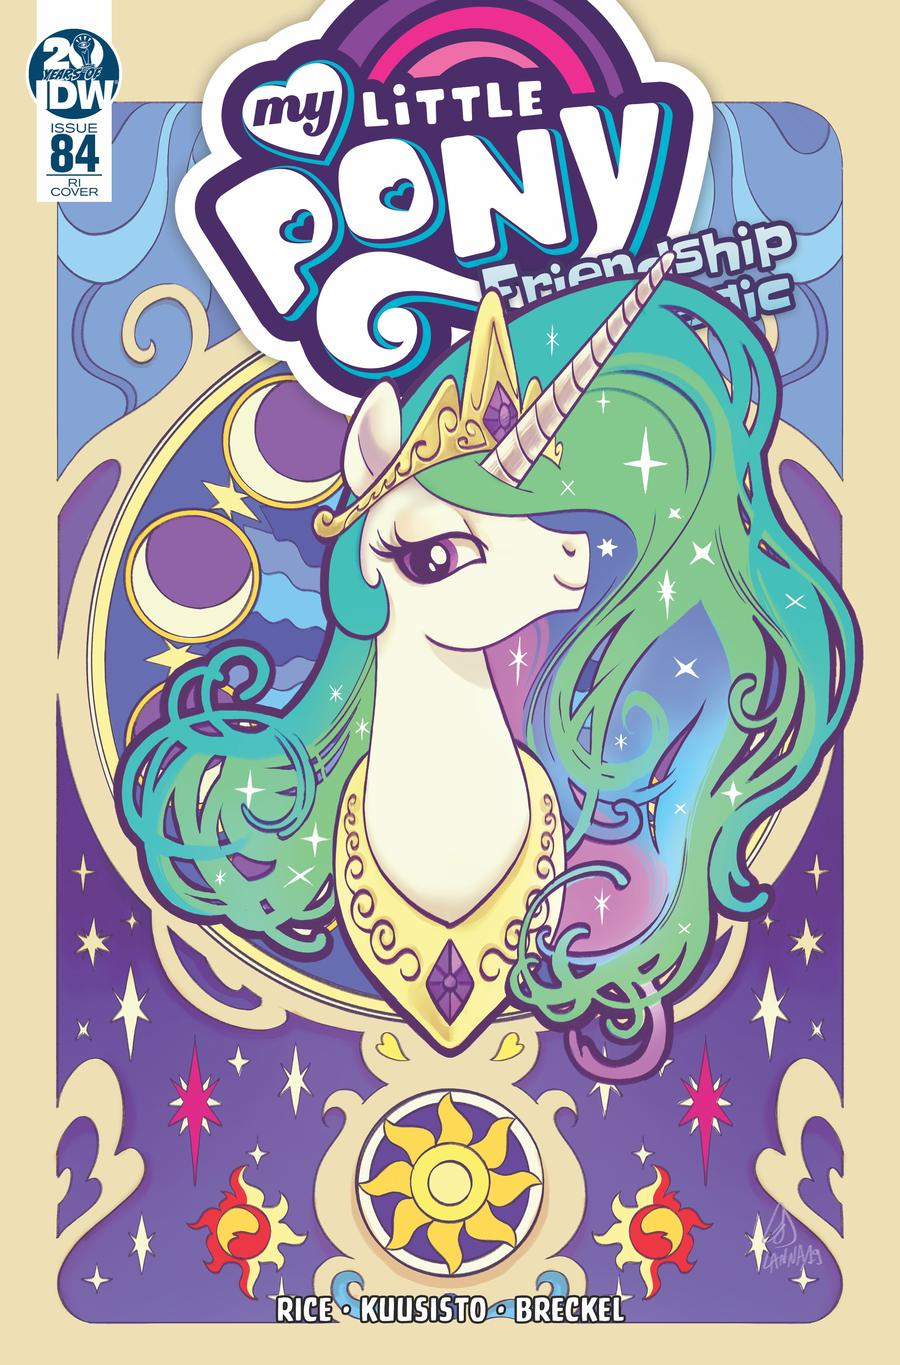 Cover art of MLPFIM 84